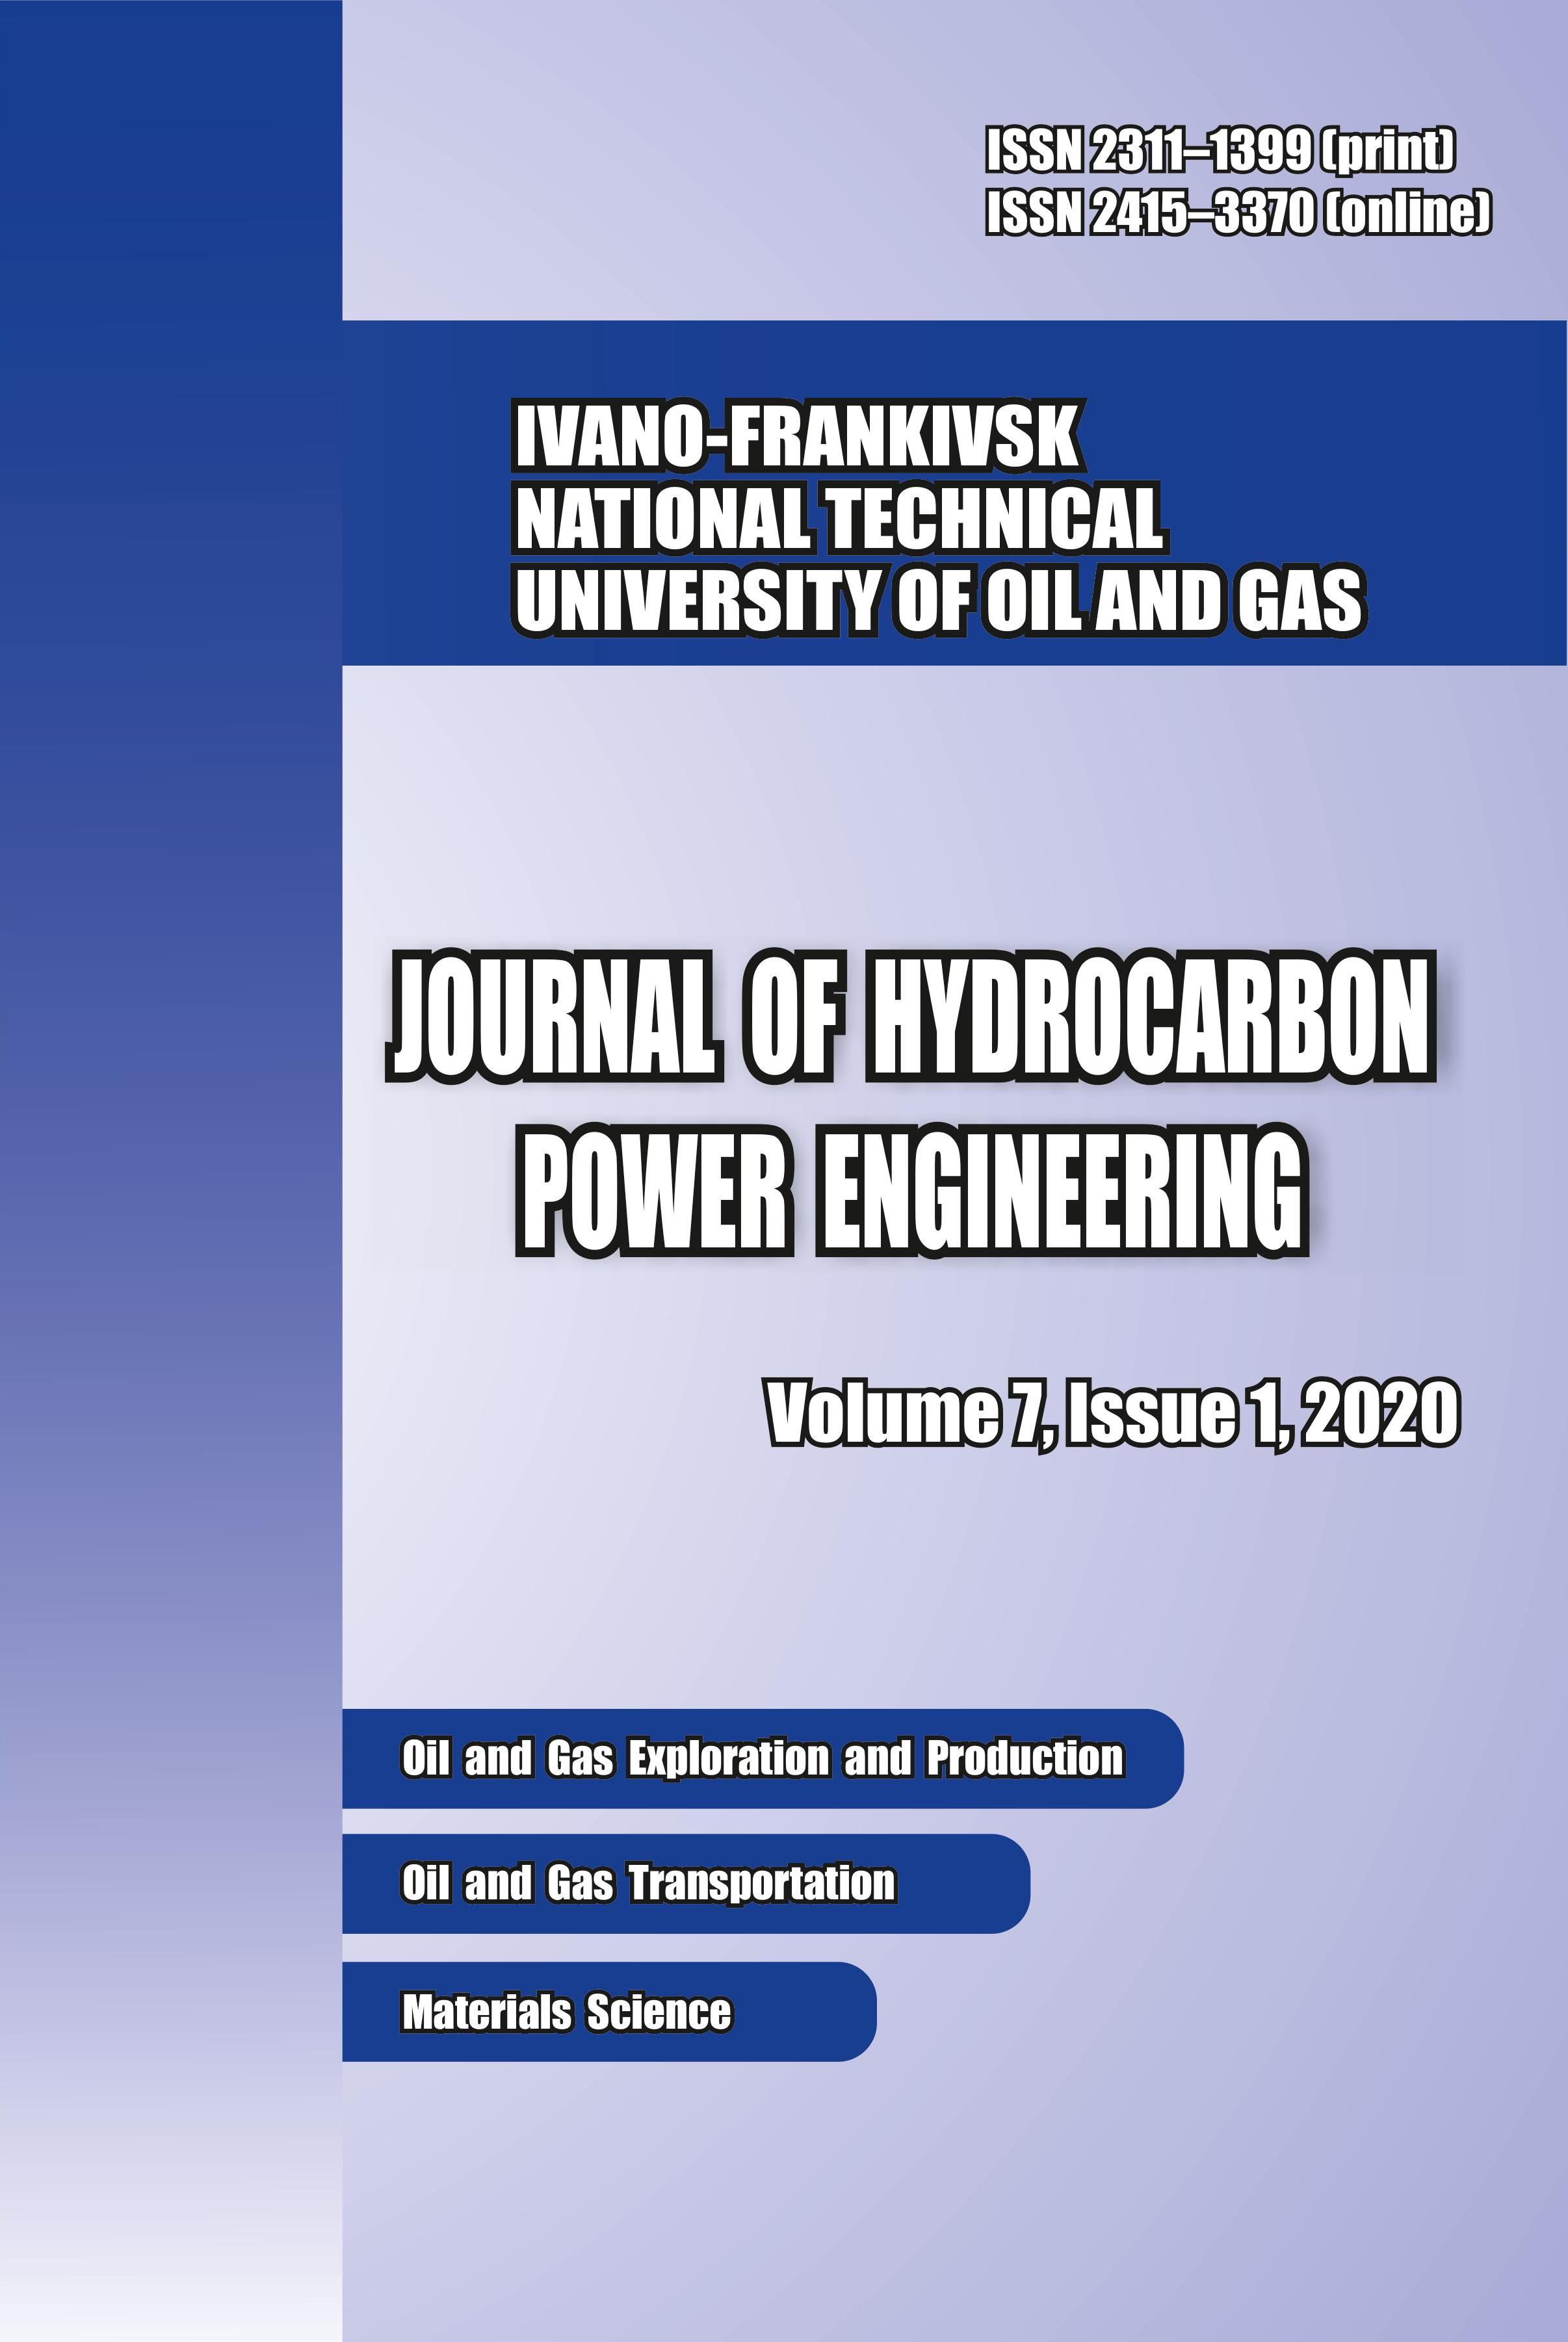 View Vol. 7 No. 1 (2020): JOURNAL OF HYDROCARBON POWER ENGINEERING